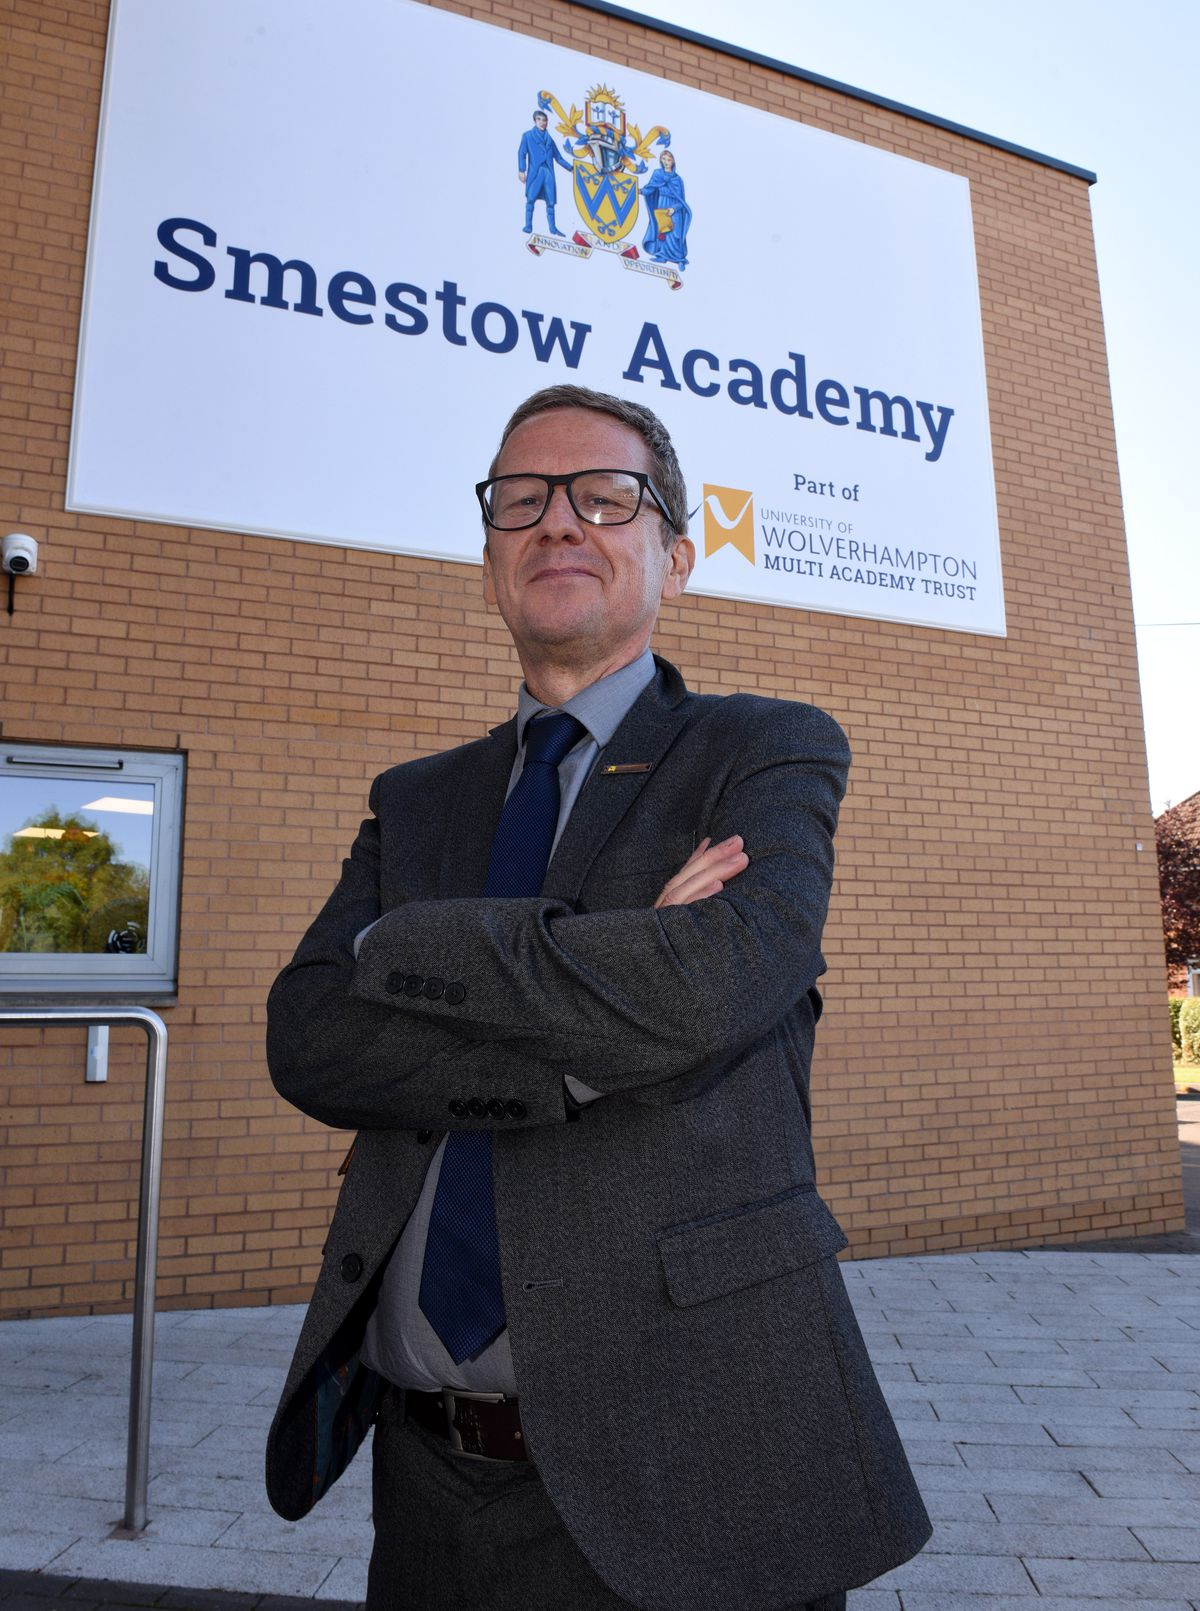 Clive Jones is proud of the work done to turn the school's fortunes around